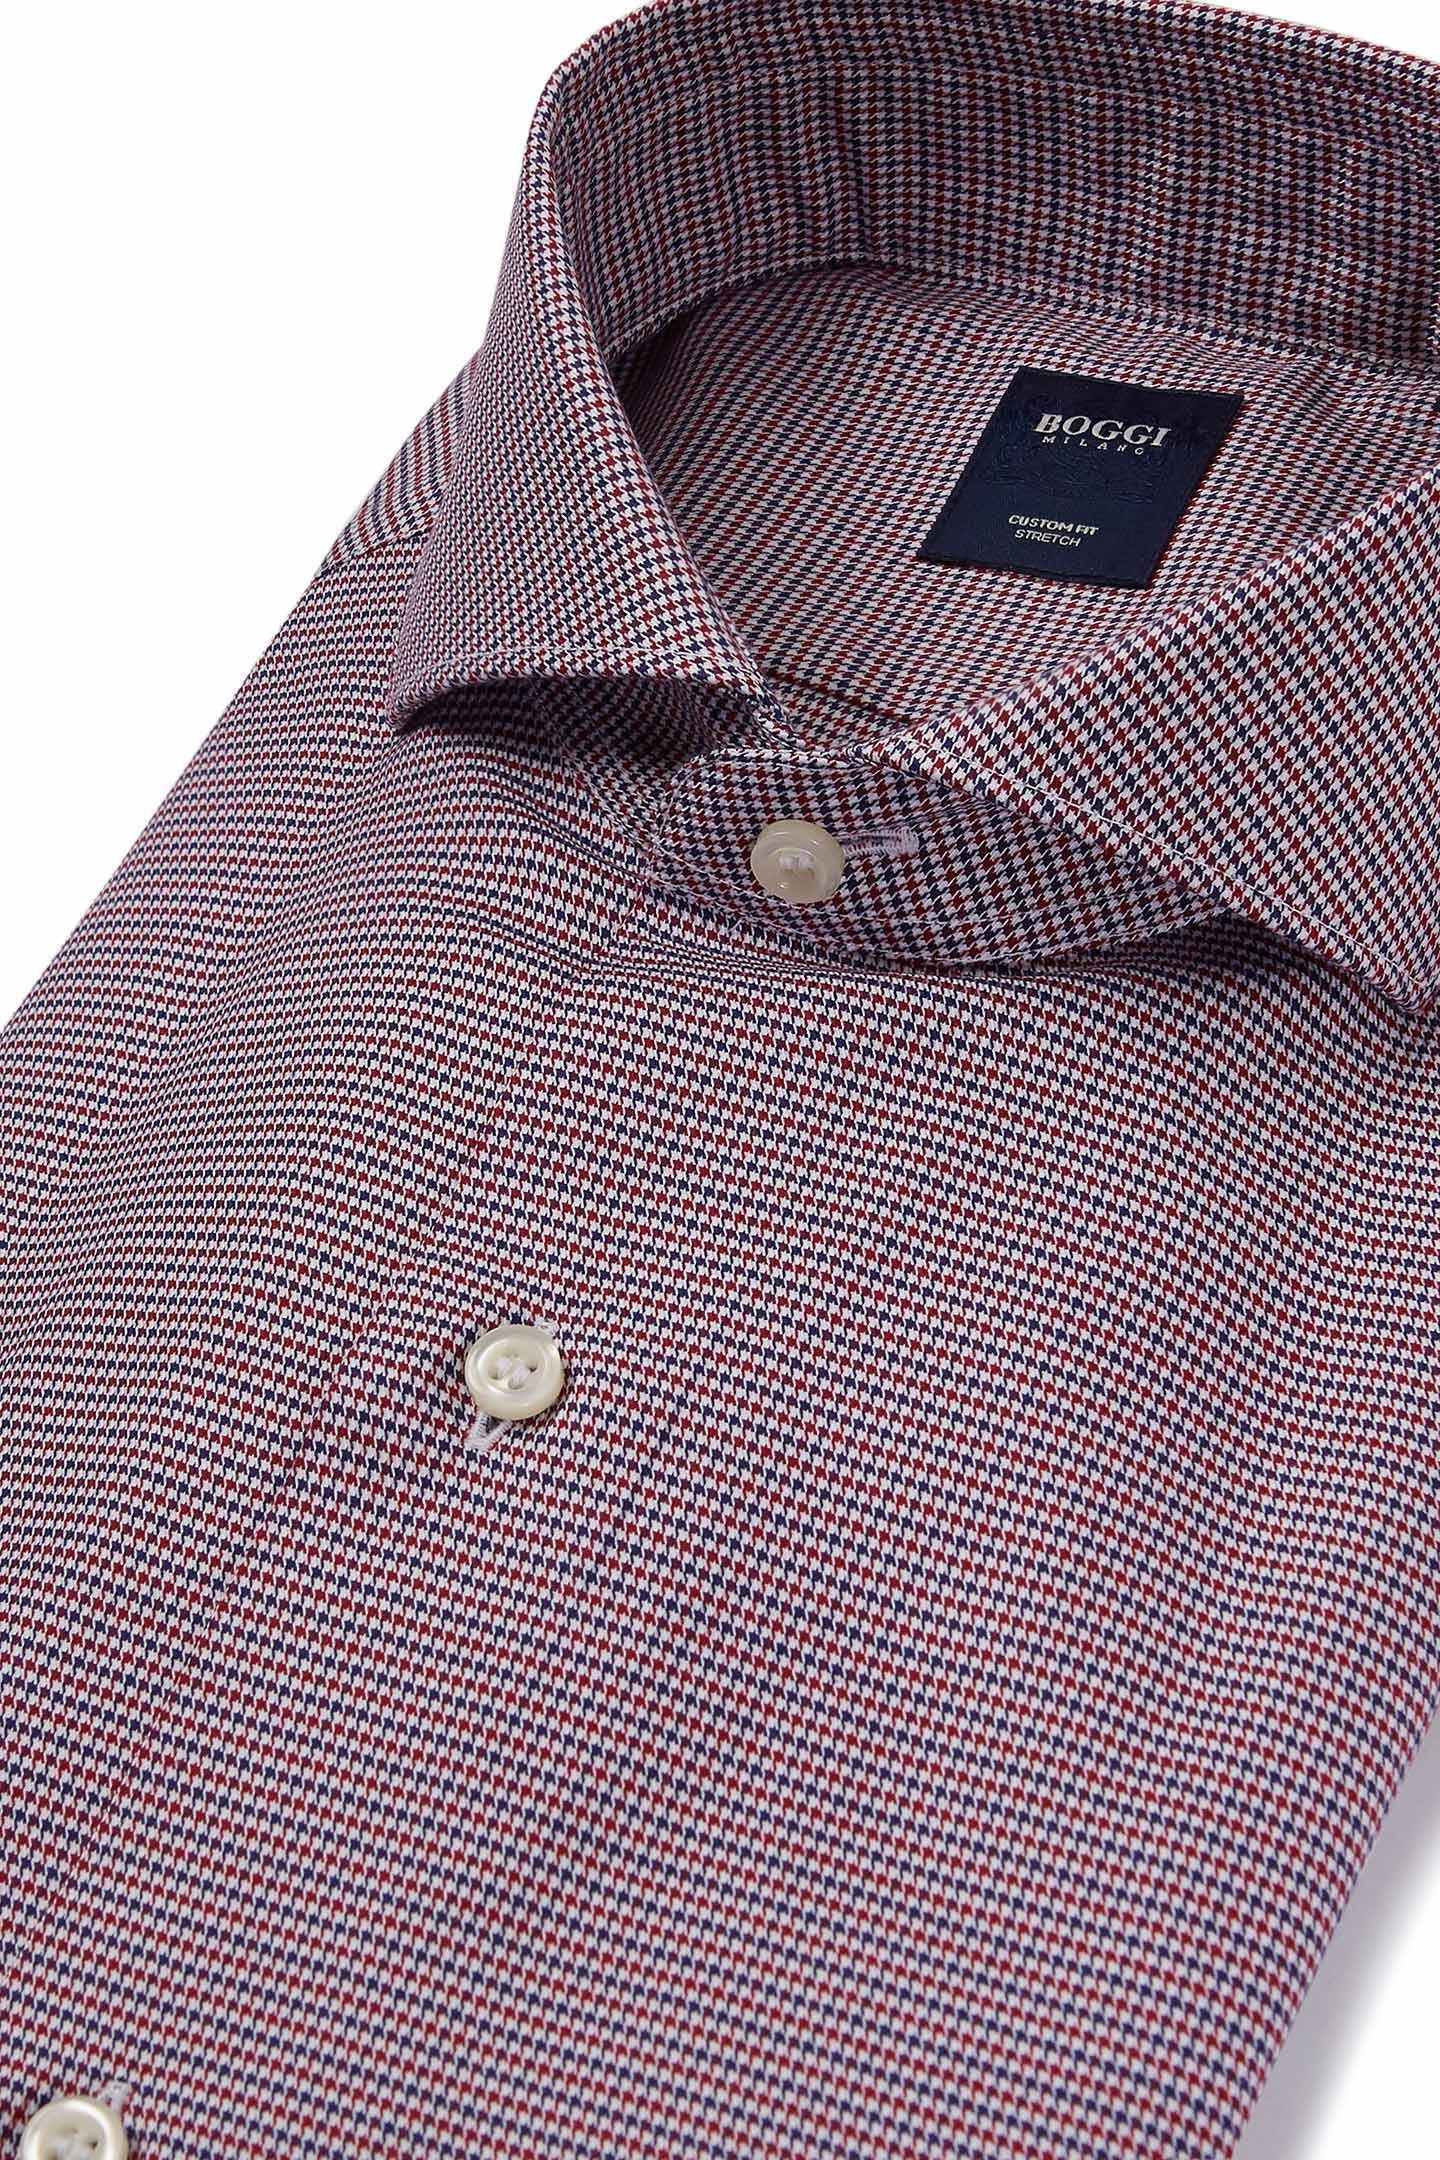 CAMICIA COLLO NAPOLI BLU-BORDEAUX CUSTOM FIT  932b2f7ea991